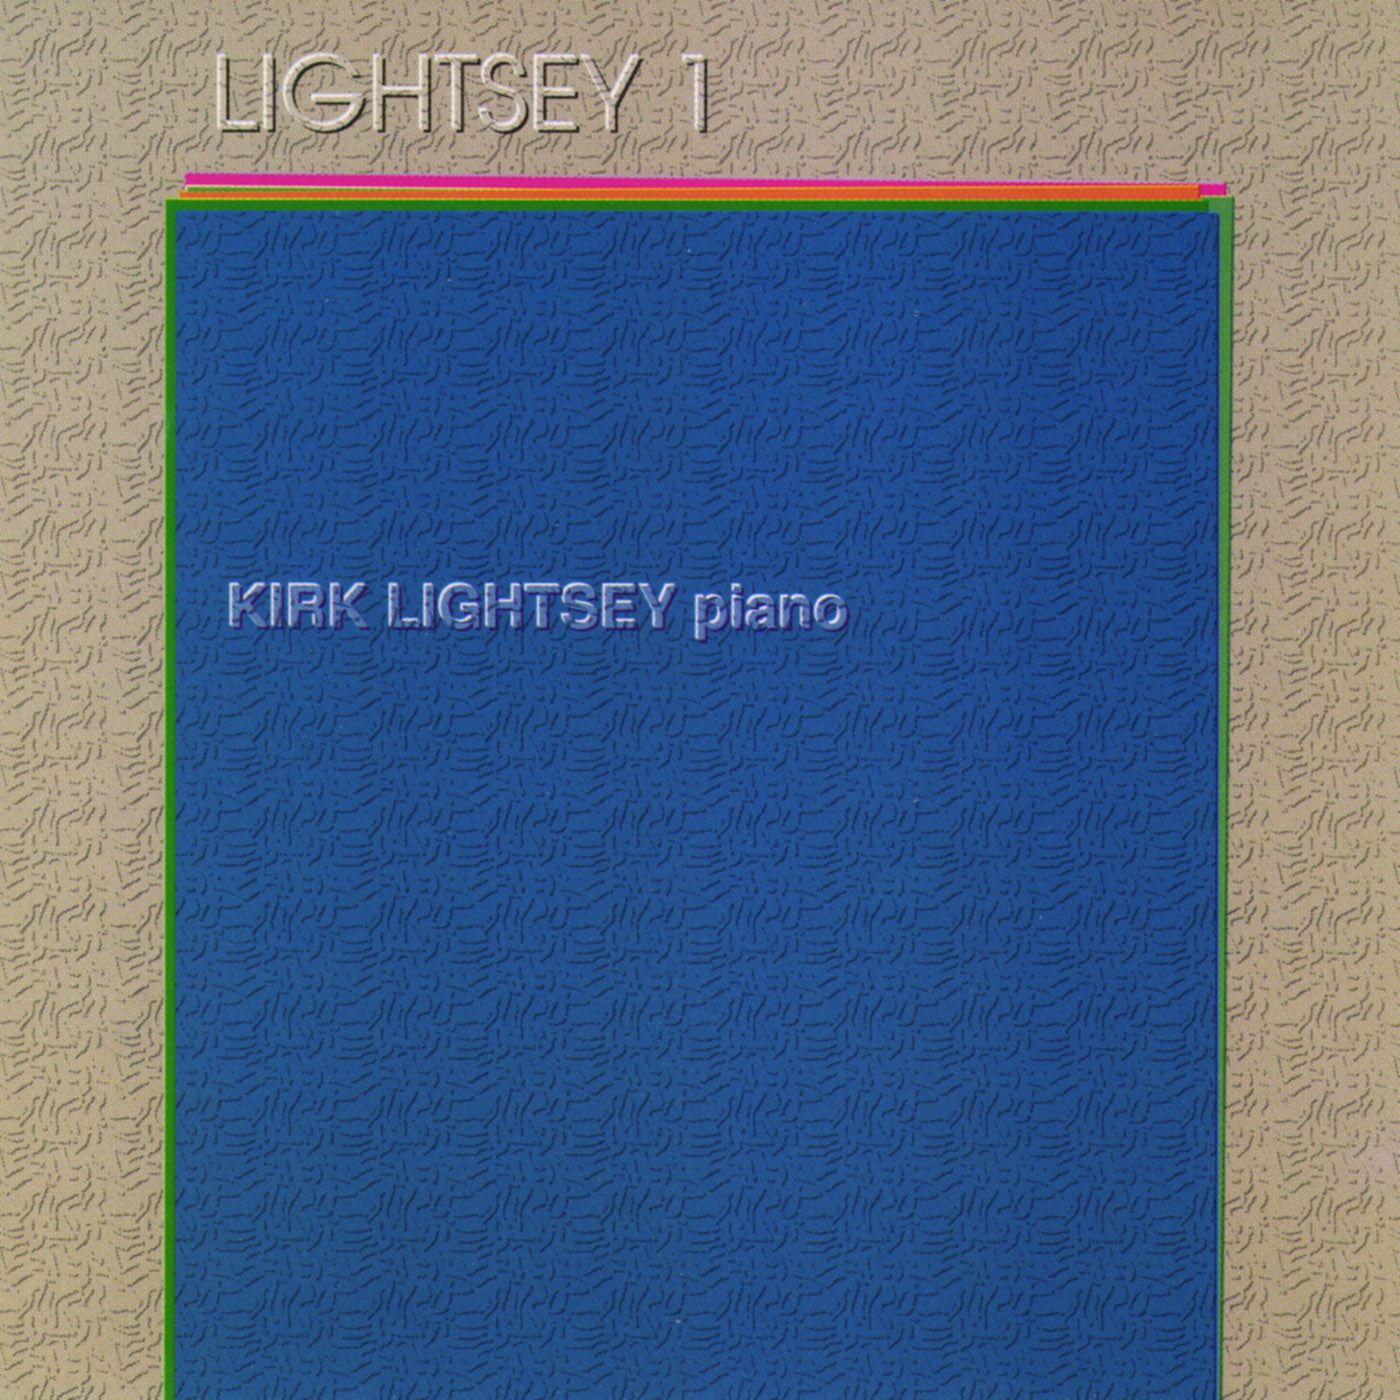 Lightsey 1 by Kirk Lightsey cover